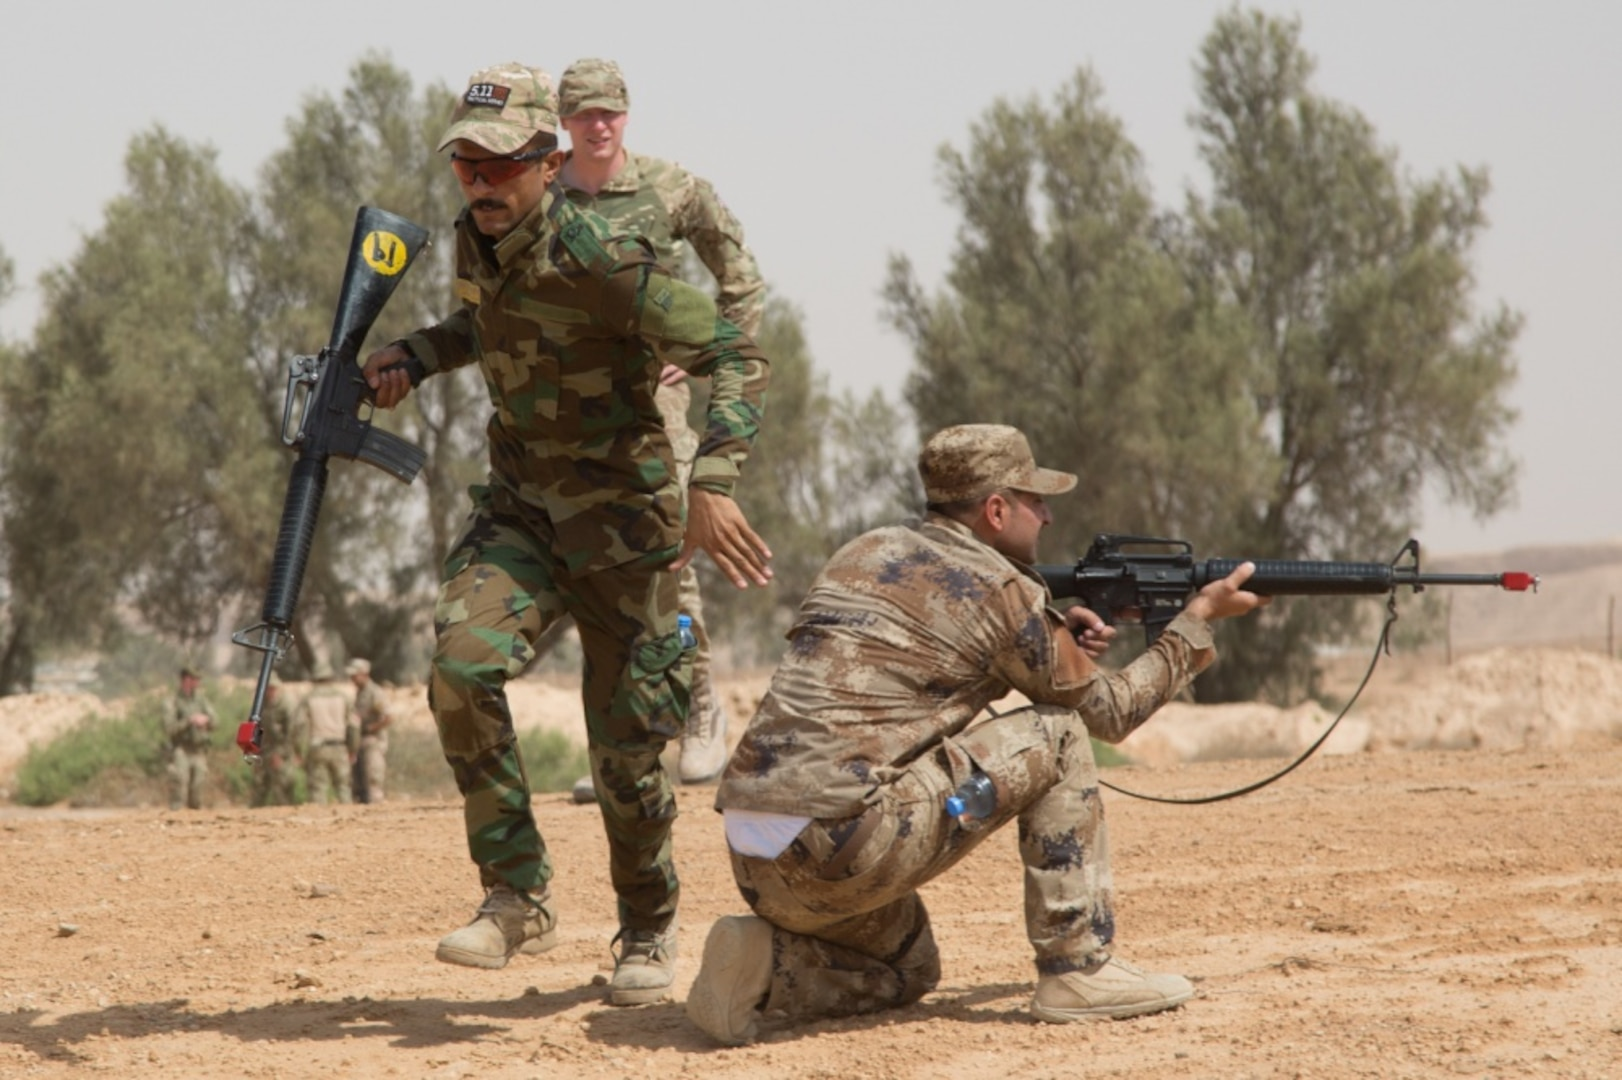 An Iraqi soldier rushes to regroup with his team as they return fire during a basic infantry class at Camp Al Asad, Iraq, July 4, 2017. The training is critical to enabling Iraqi forces to liberate their nation from the Islamic State of Iraq and Syria. Army photo by Spc. Cole Erickson